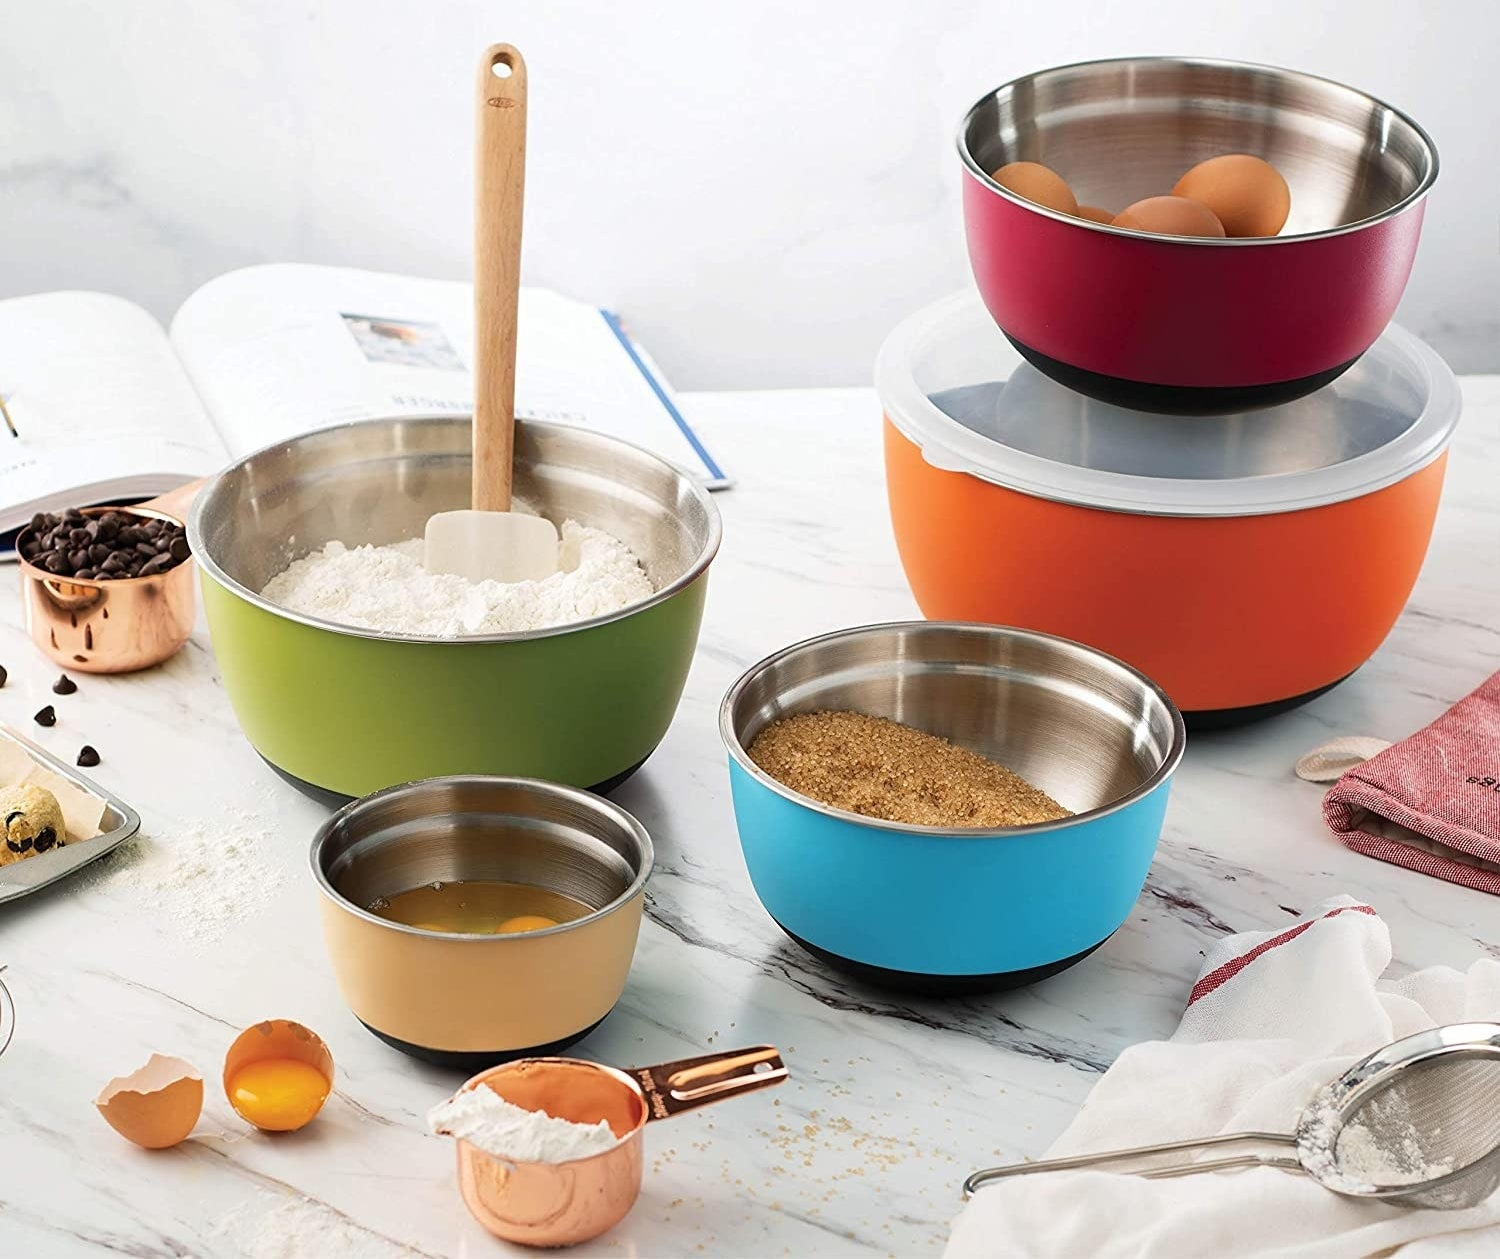 Five stainless steel bowls with different baking ingredients in them